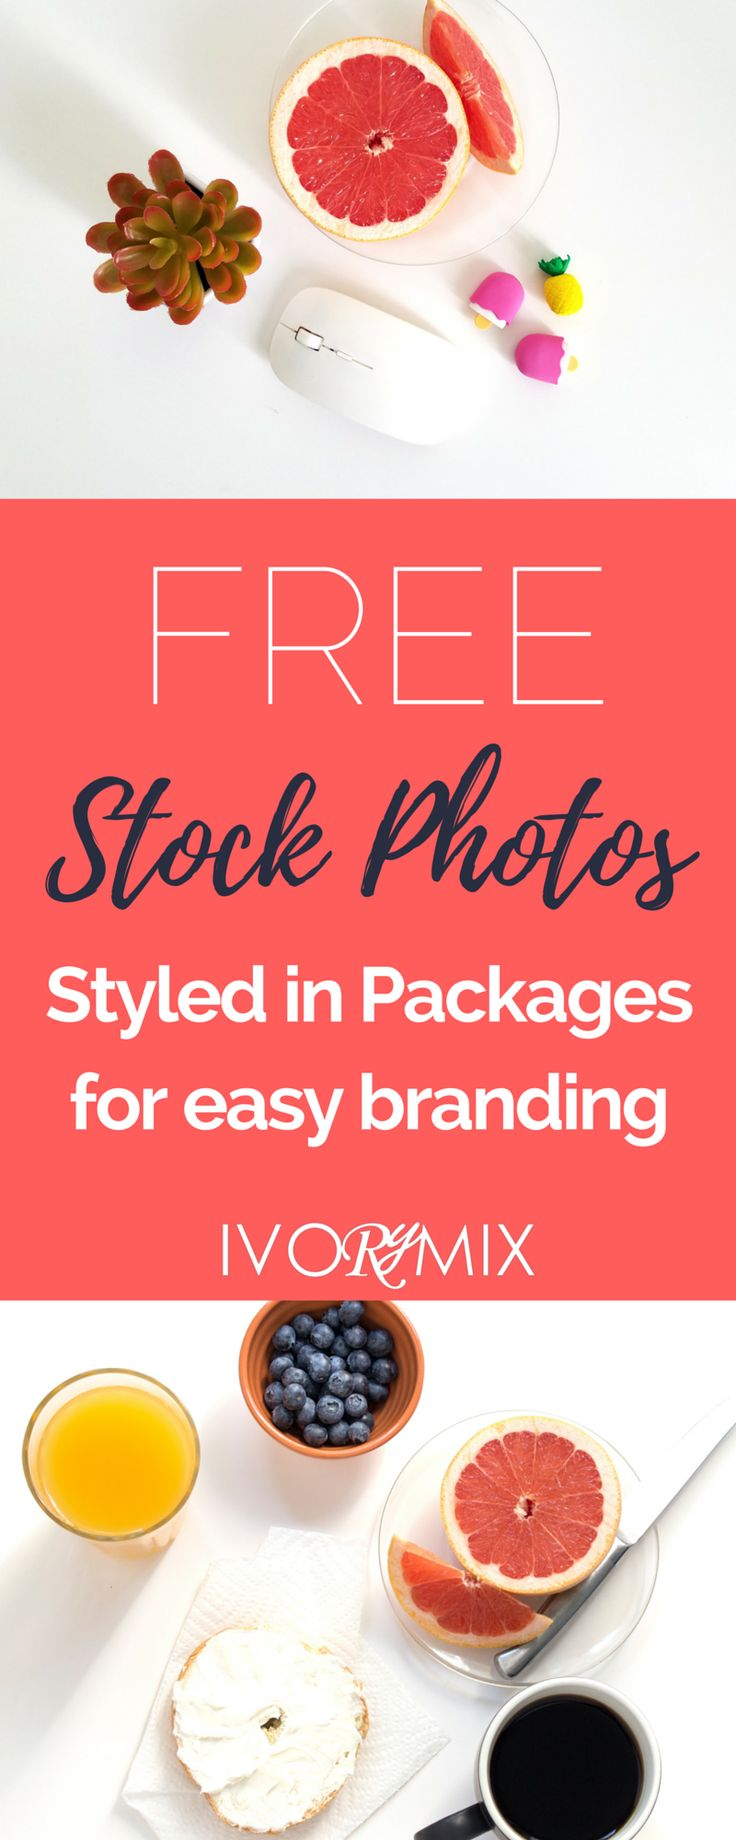 Free Stock Photos styled and packaged for easy branding on your blog from Ivorymix